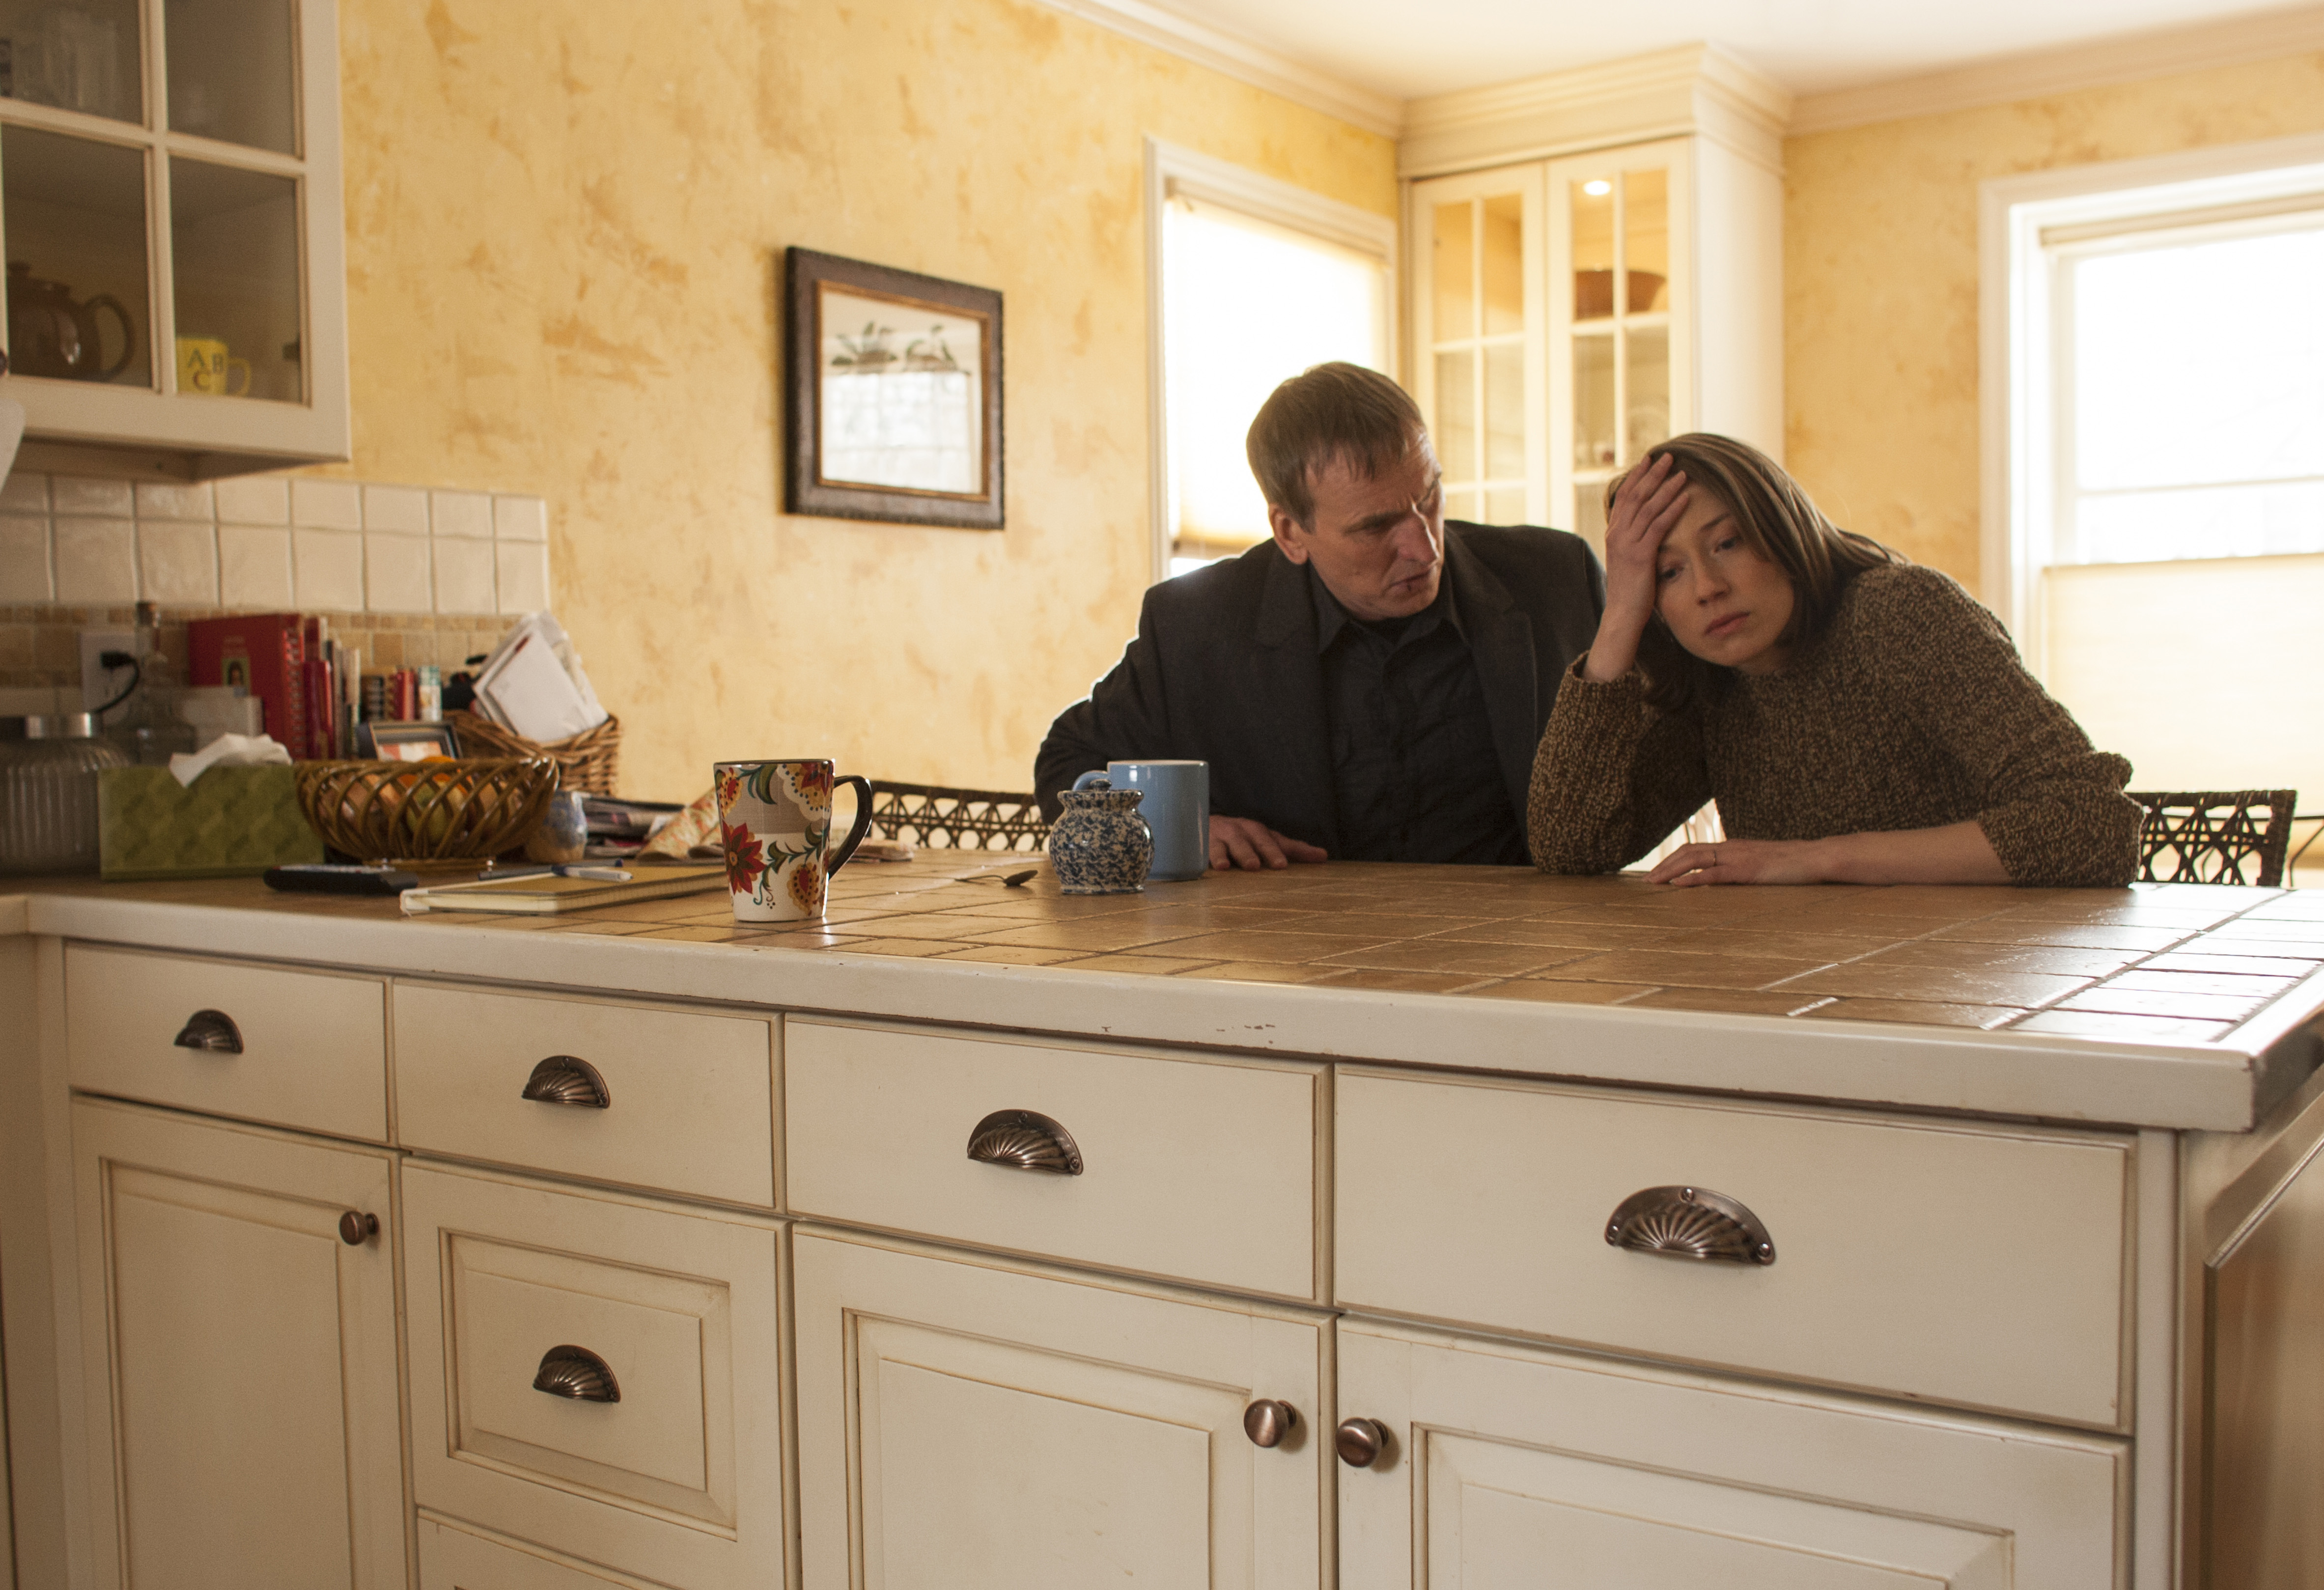 Christopher Eccleston as Reverend Matt Jamison and Carrie Coon as Nora Durst in the episode  Two Boats and a Helicopter  in the HBO show The Leftovers.